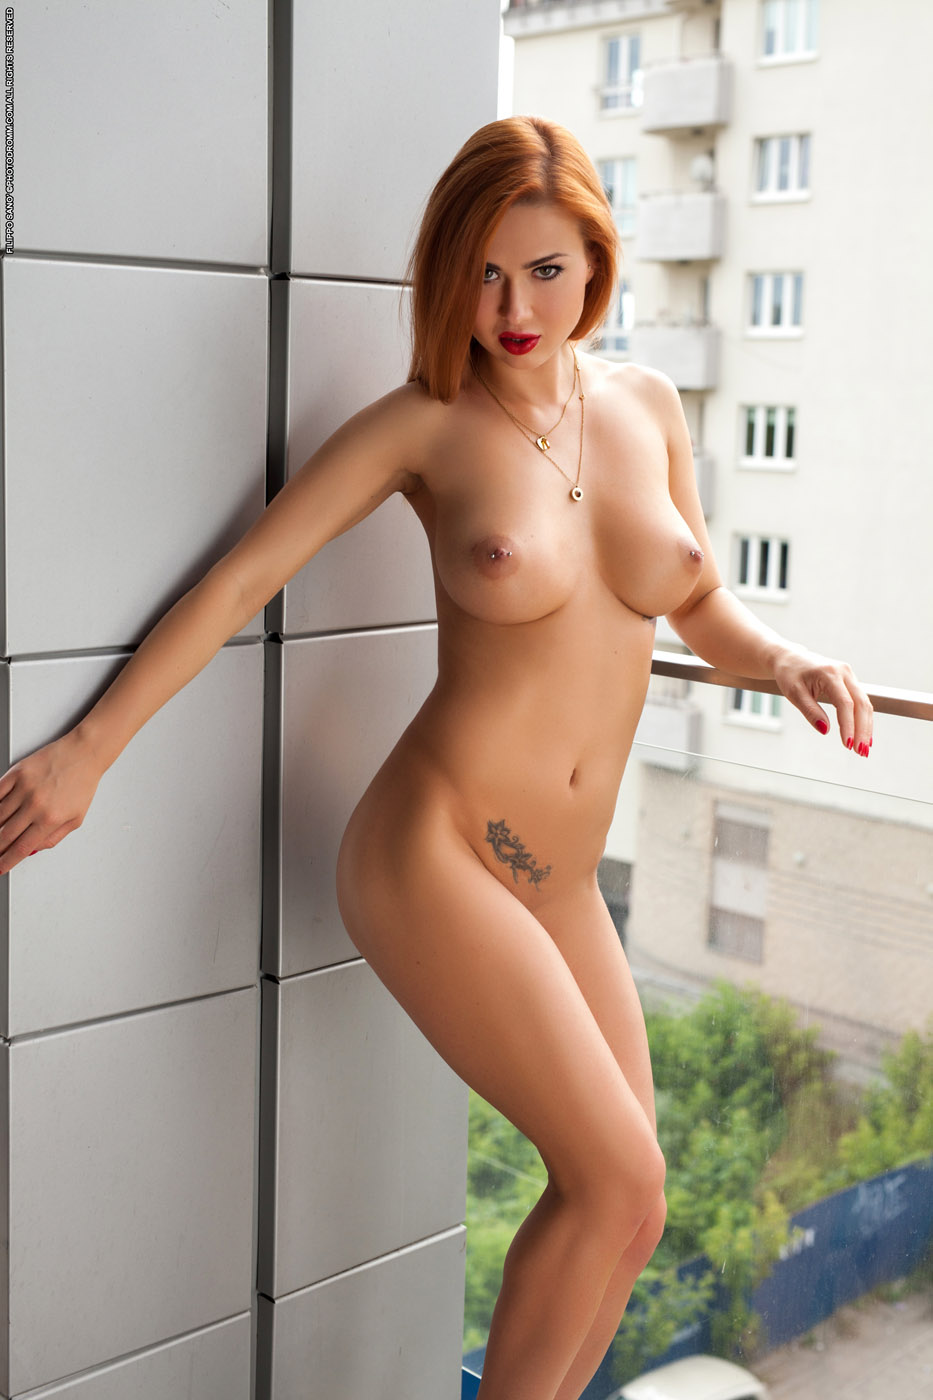 Justyna Red Hot Seduction-4462